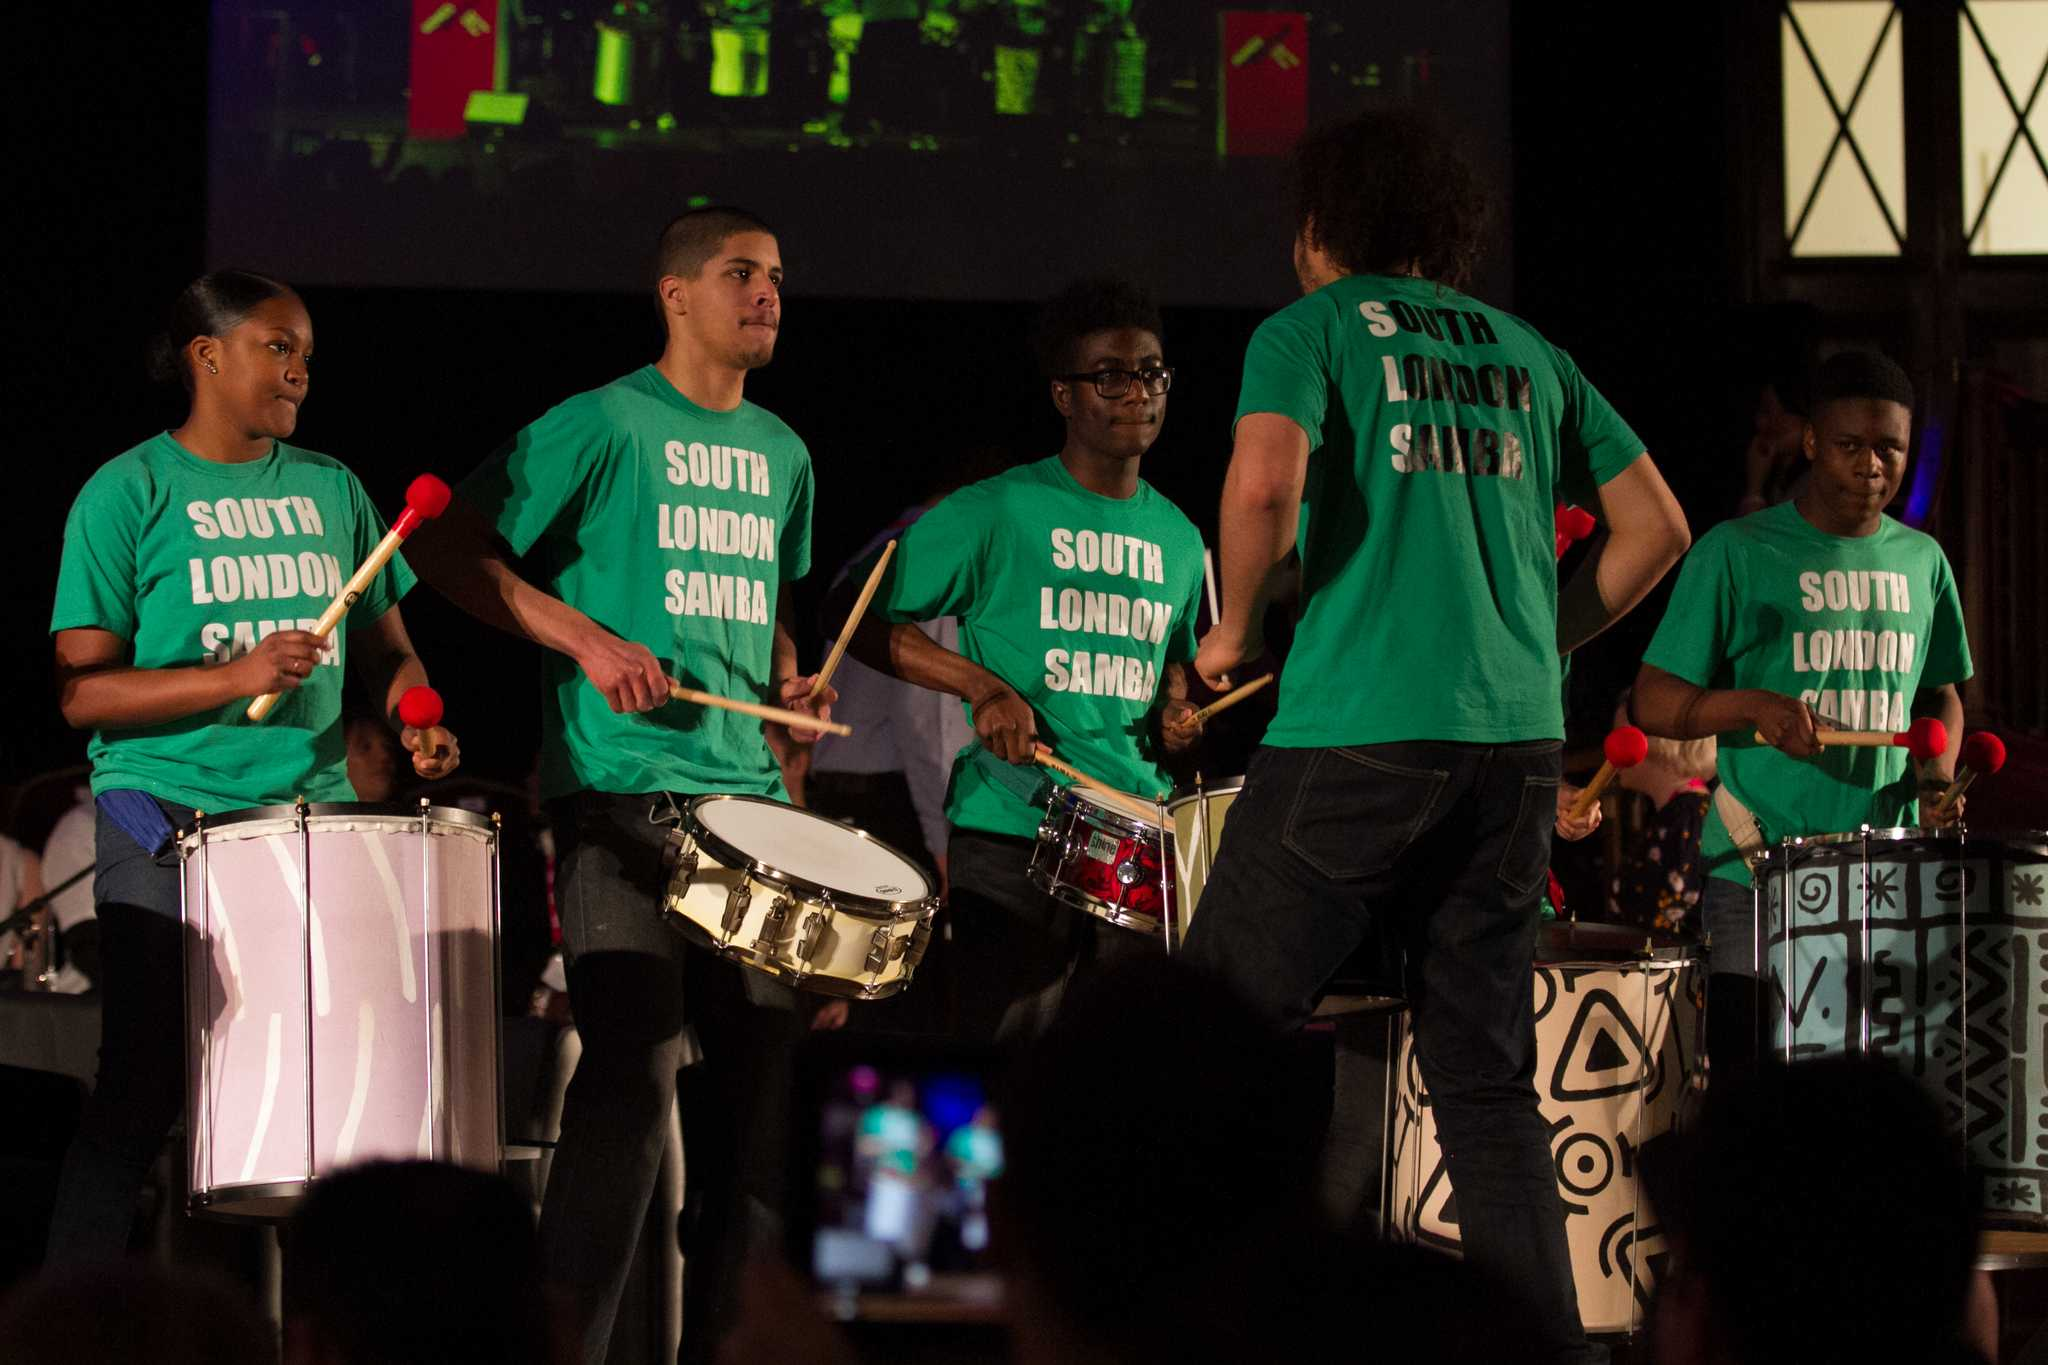 The South London Samba band